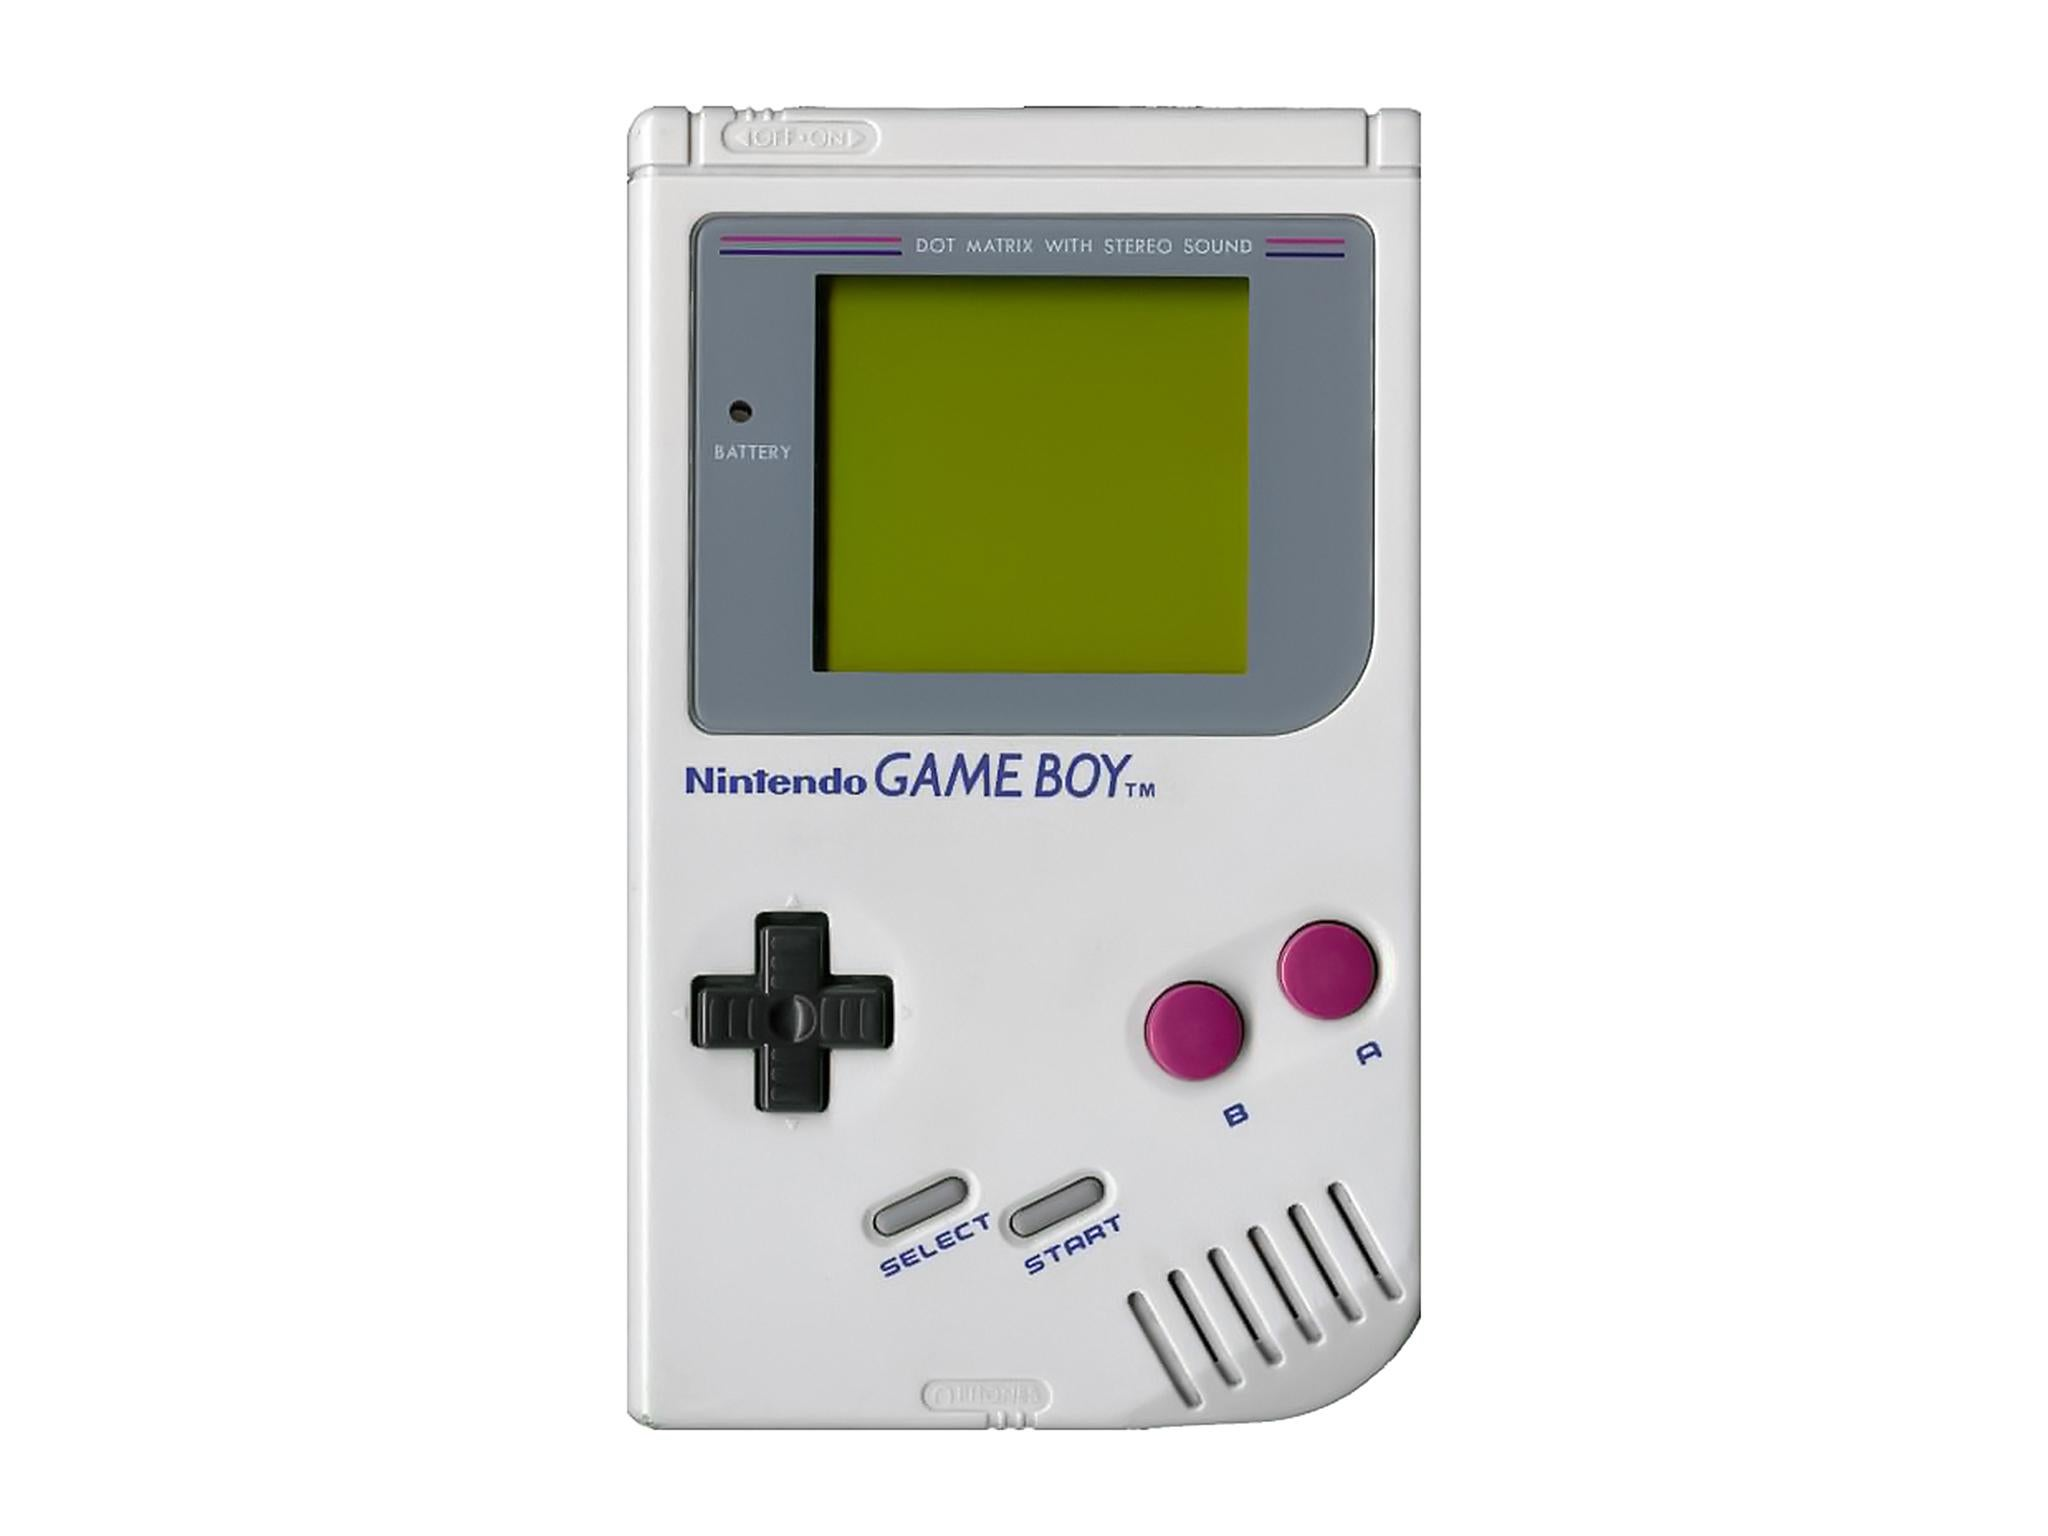 Game Boy might be coming back